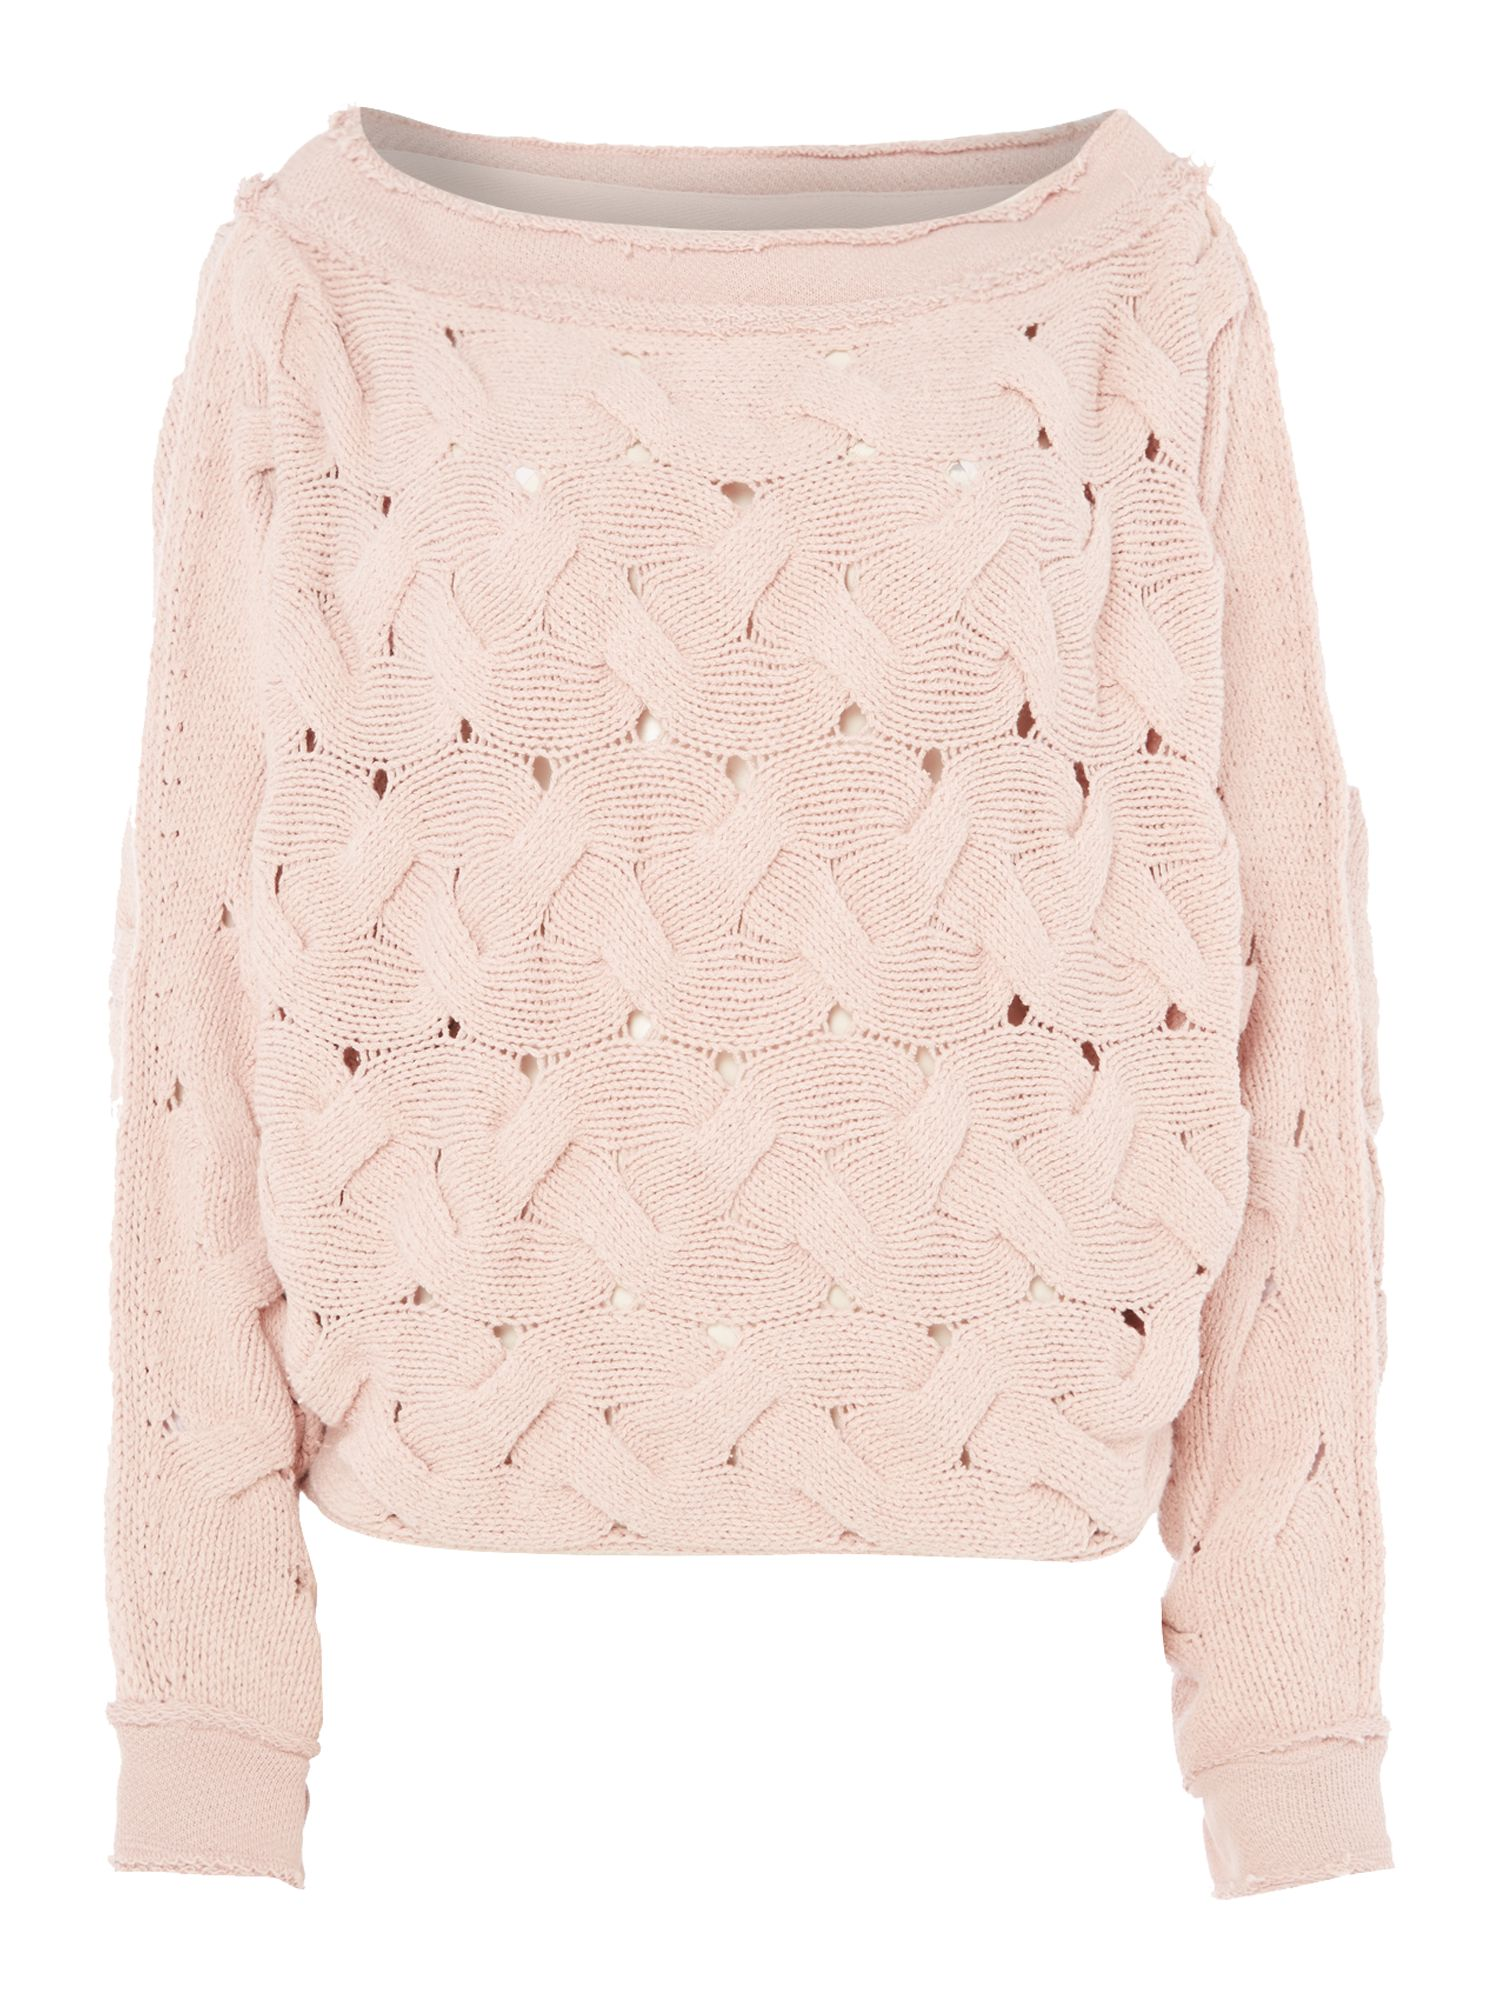 Free People Free People Relaxed fit Cable Knit Jumper in rose, Rose